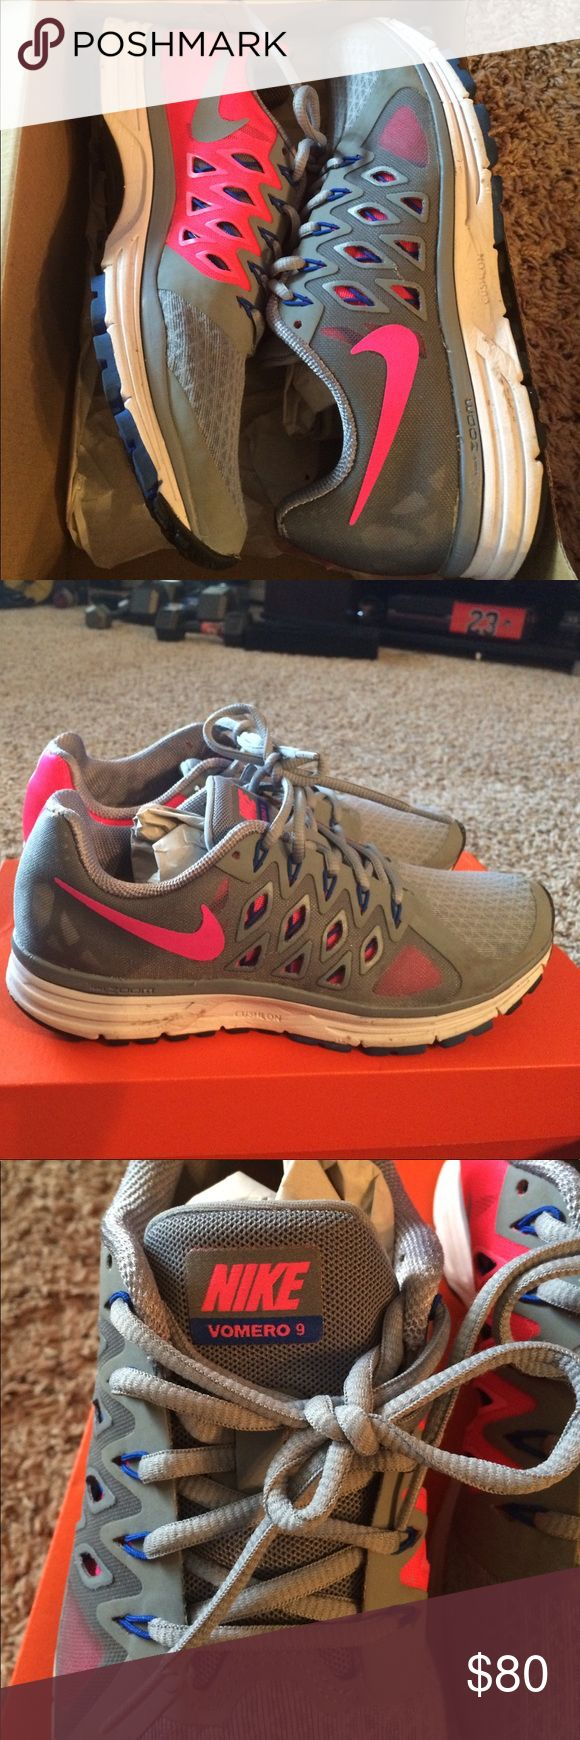 Women's Nike Vomero 9 Fitsole Size 8.5 Like New!  Worn twice for a marathon😊 Check this listing out on m e r c a r i.         Retails for $110 Nike Shoes Athletic Shoes